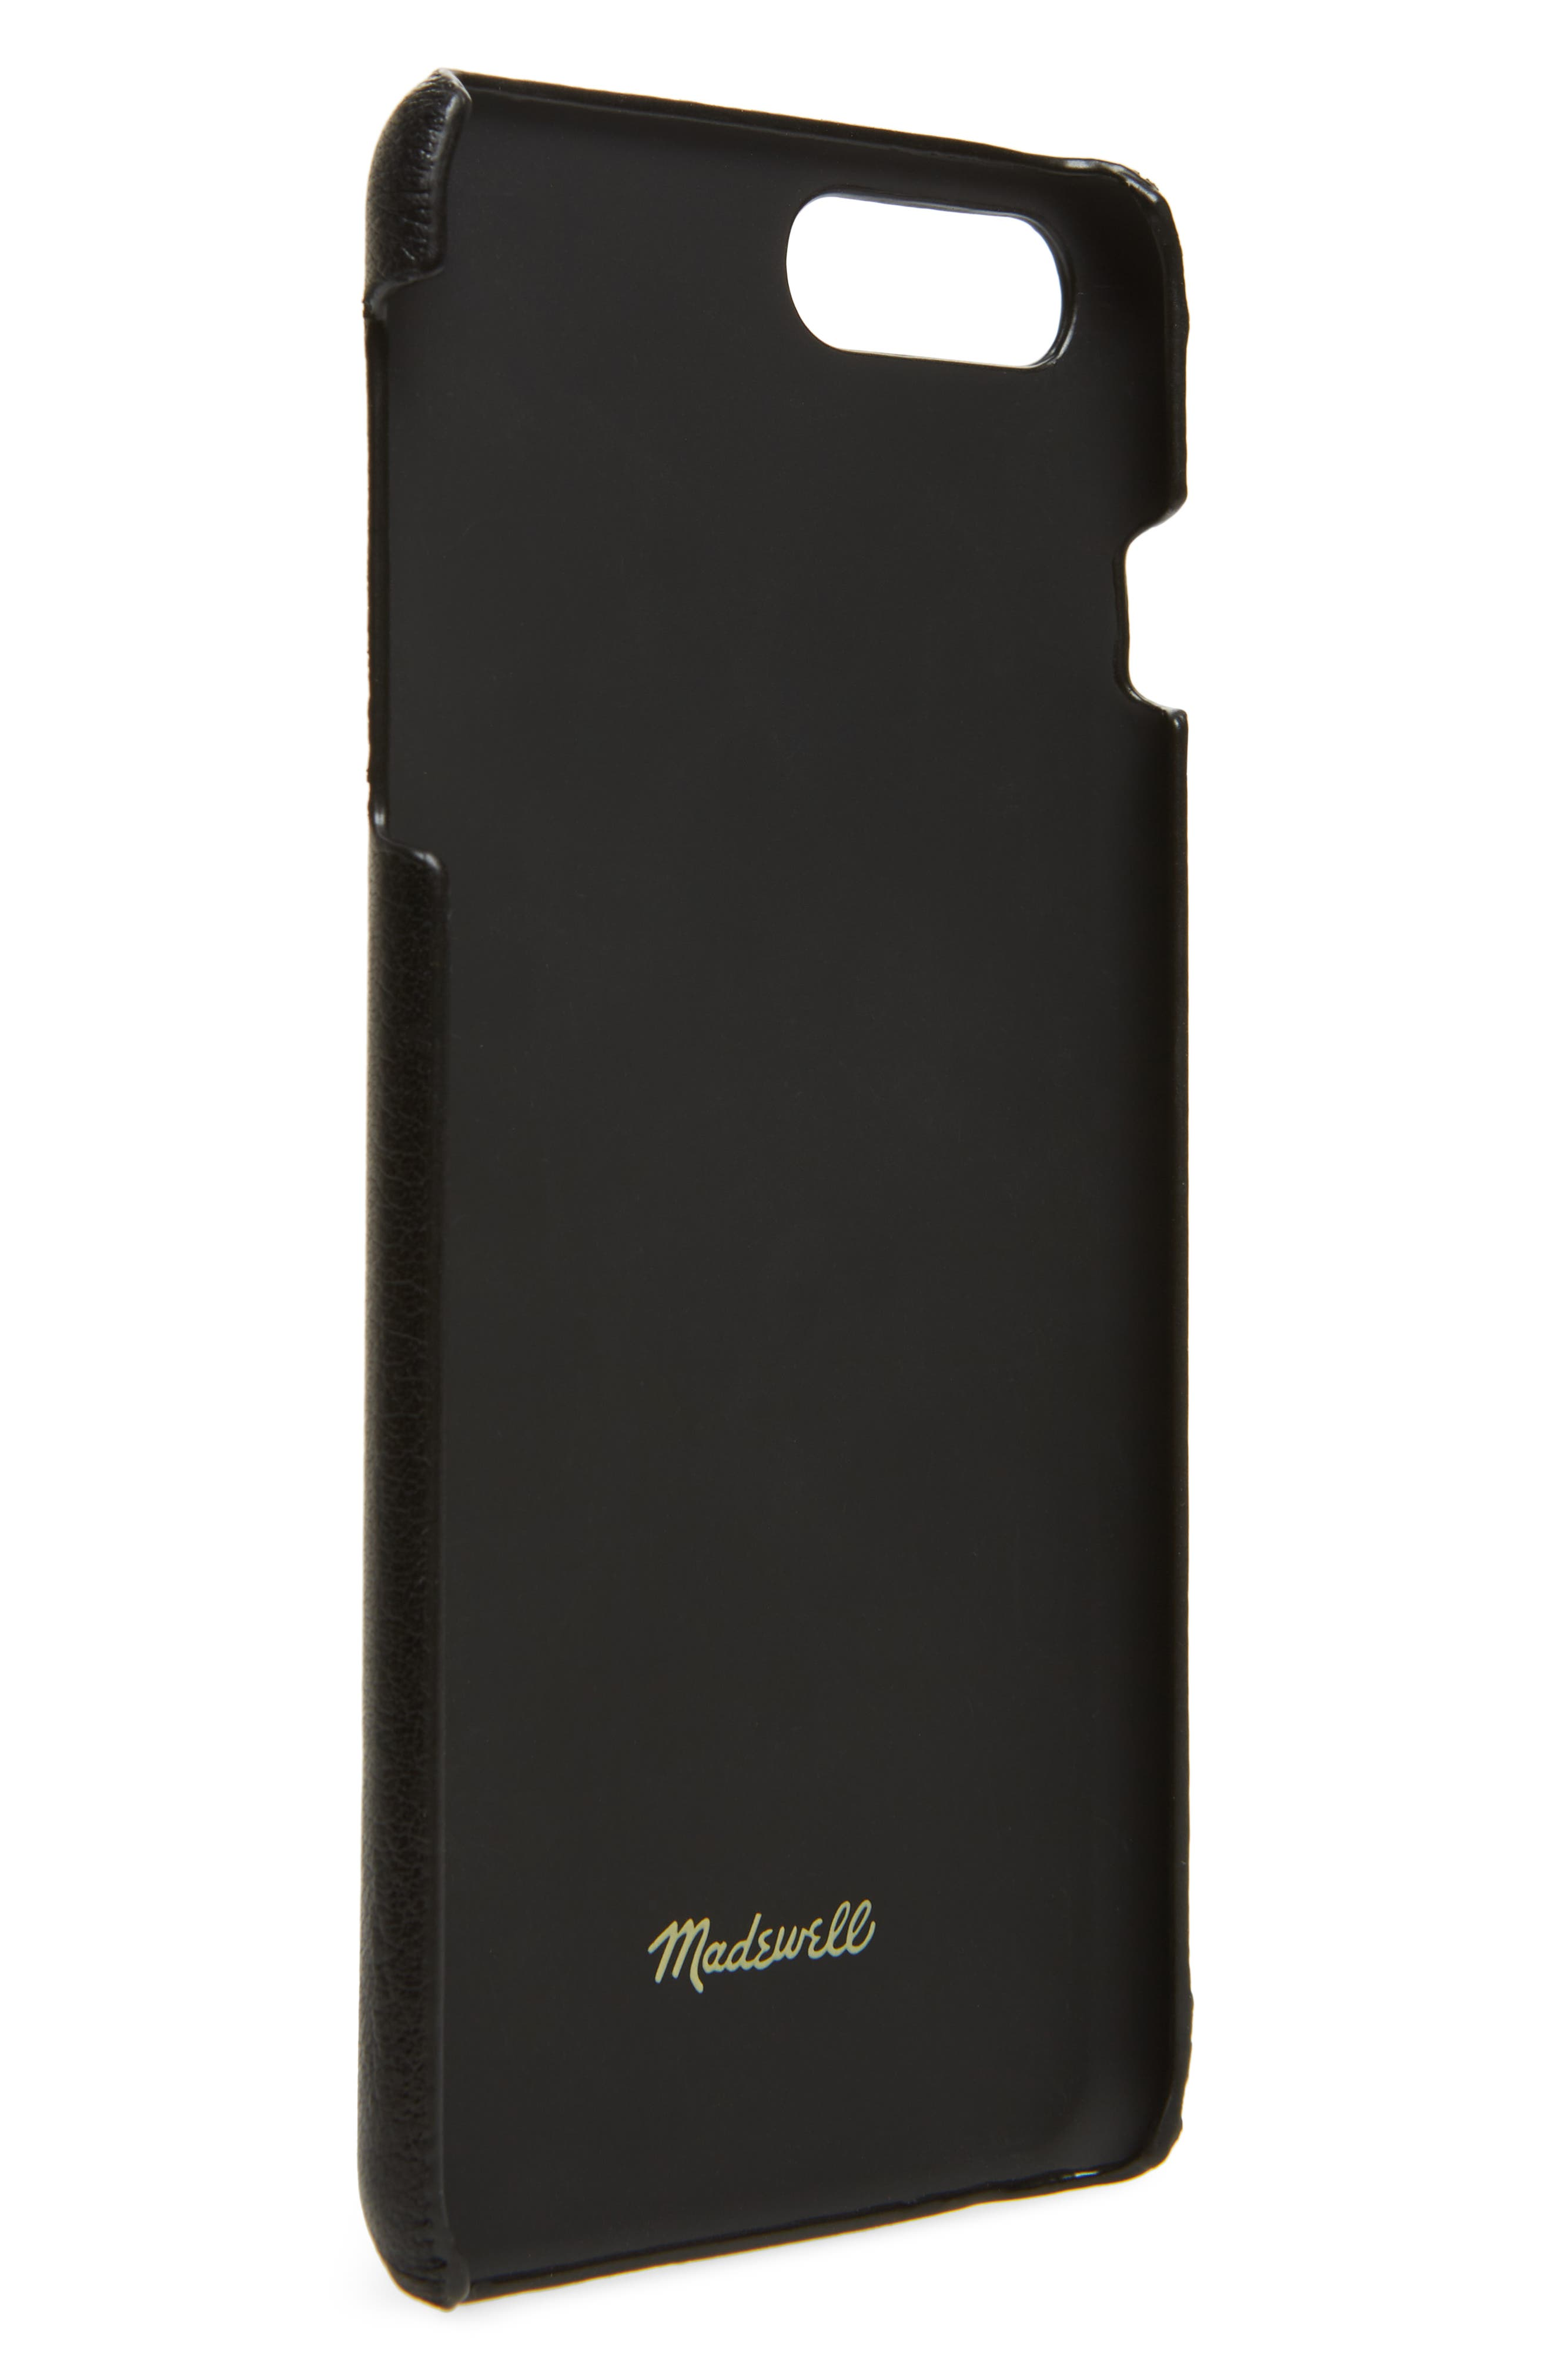 MADEWELL,                             Card Slot Leather iPhone 6/7/8 Plus Case,                             Alternate thumbnail 2, color,                             001